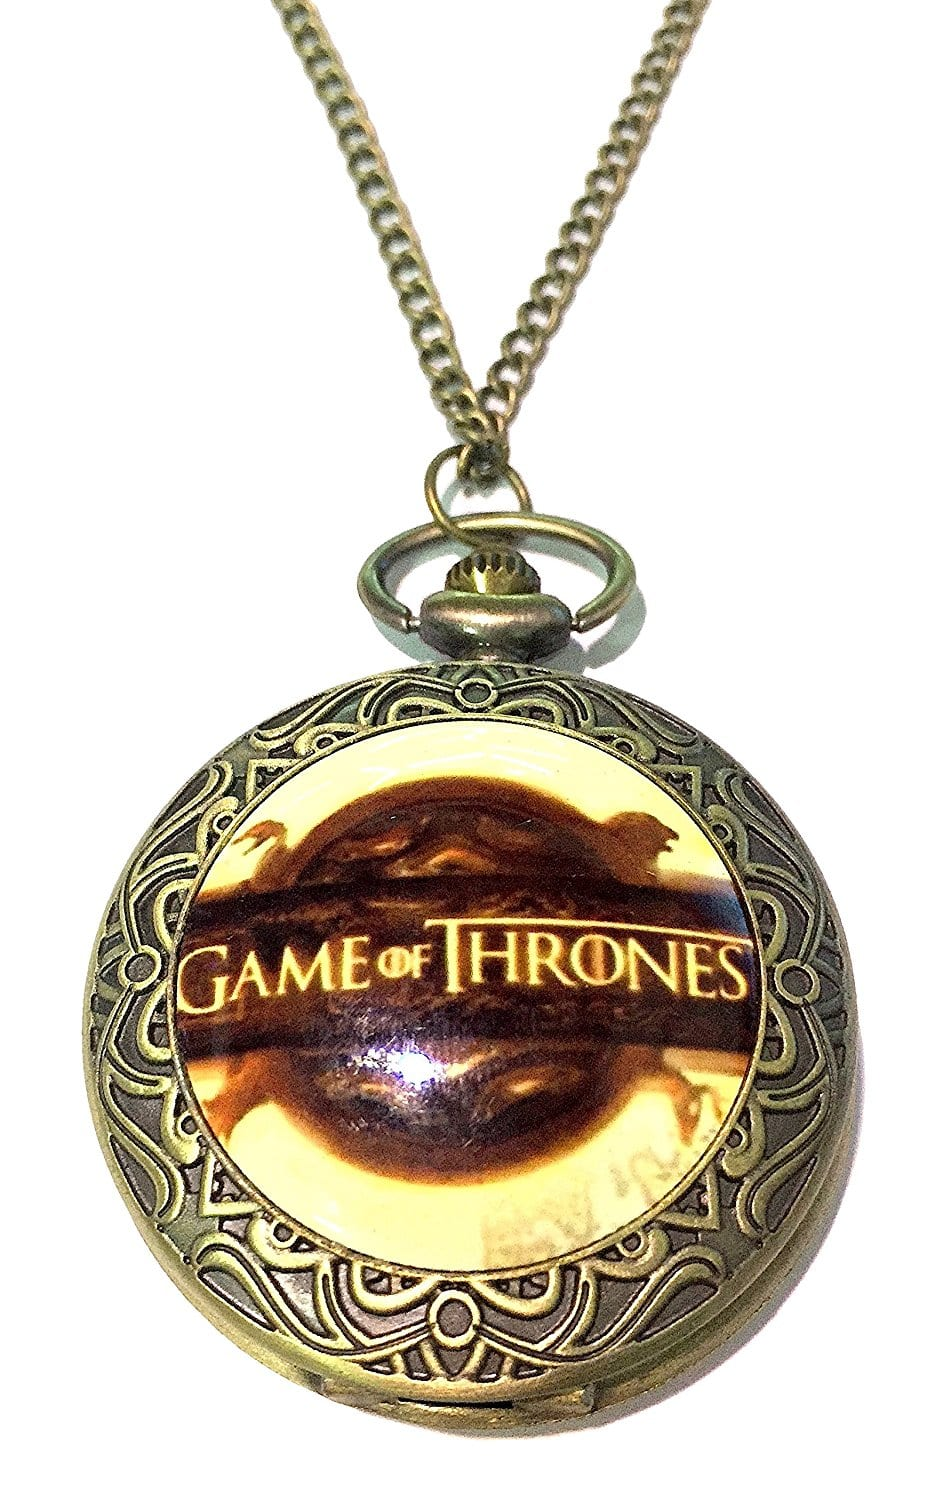 15 Game Of Thrones Inspired Jewelry Pieces For The Fans